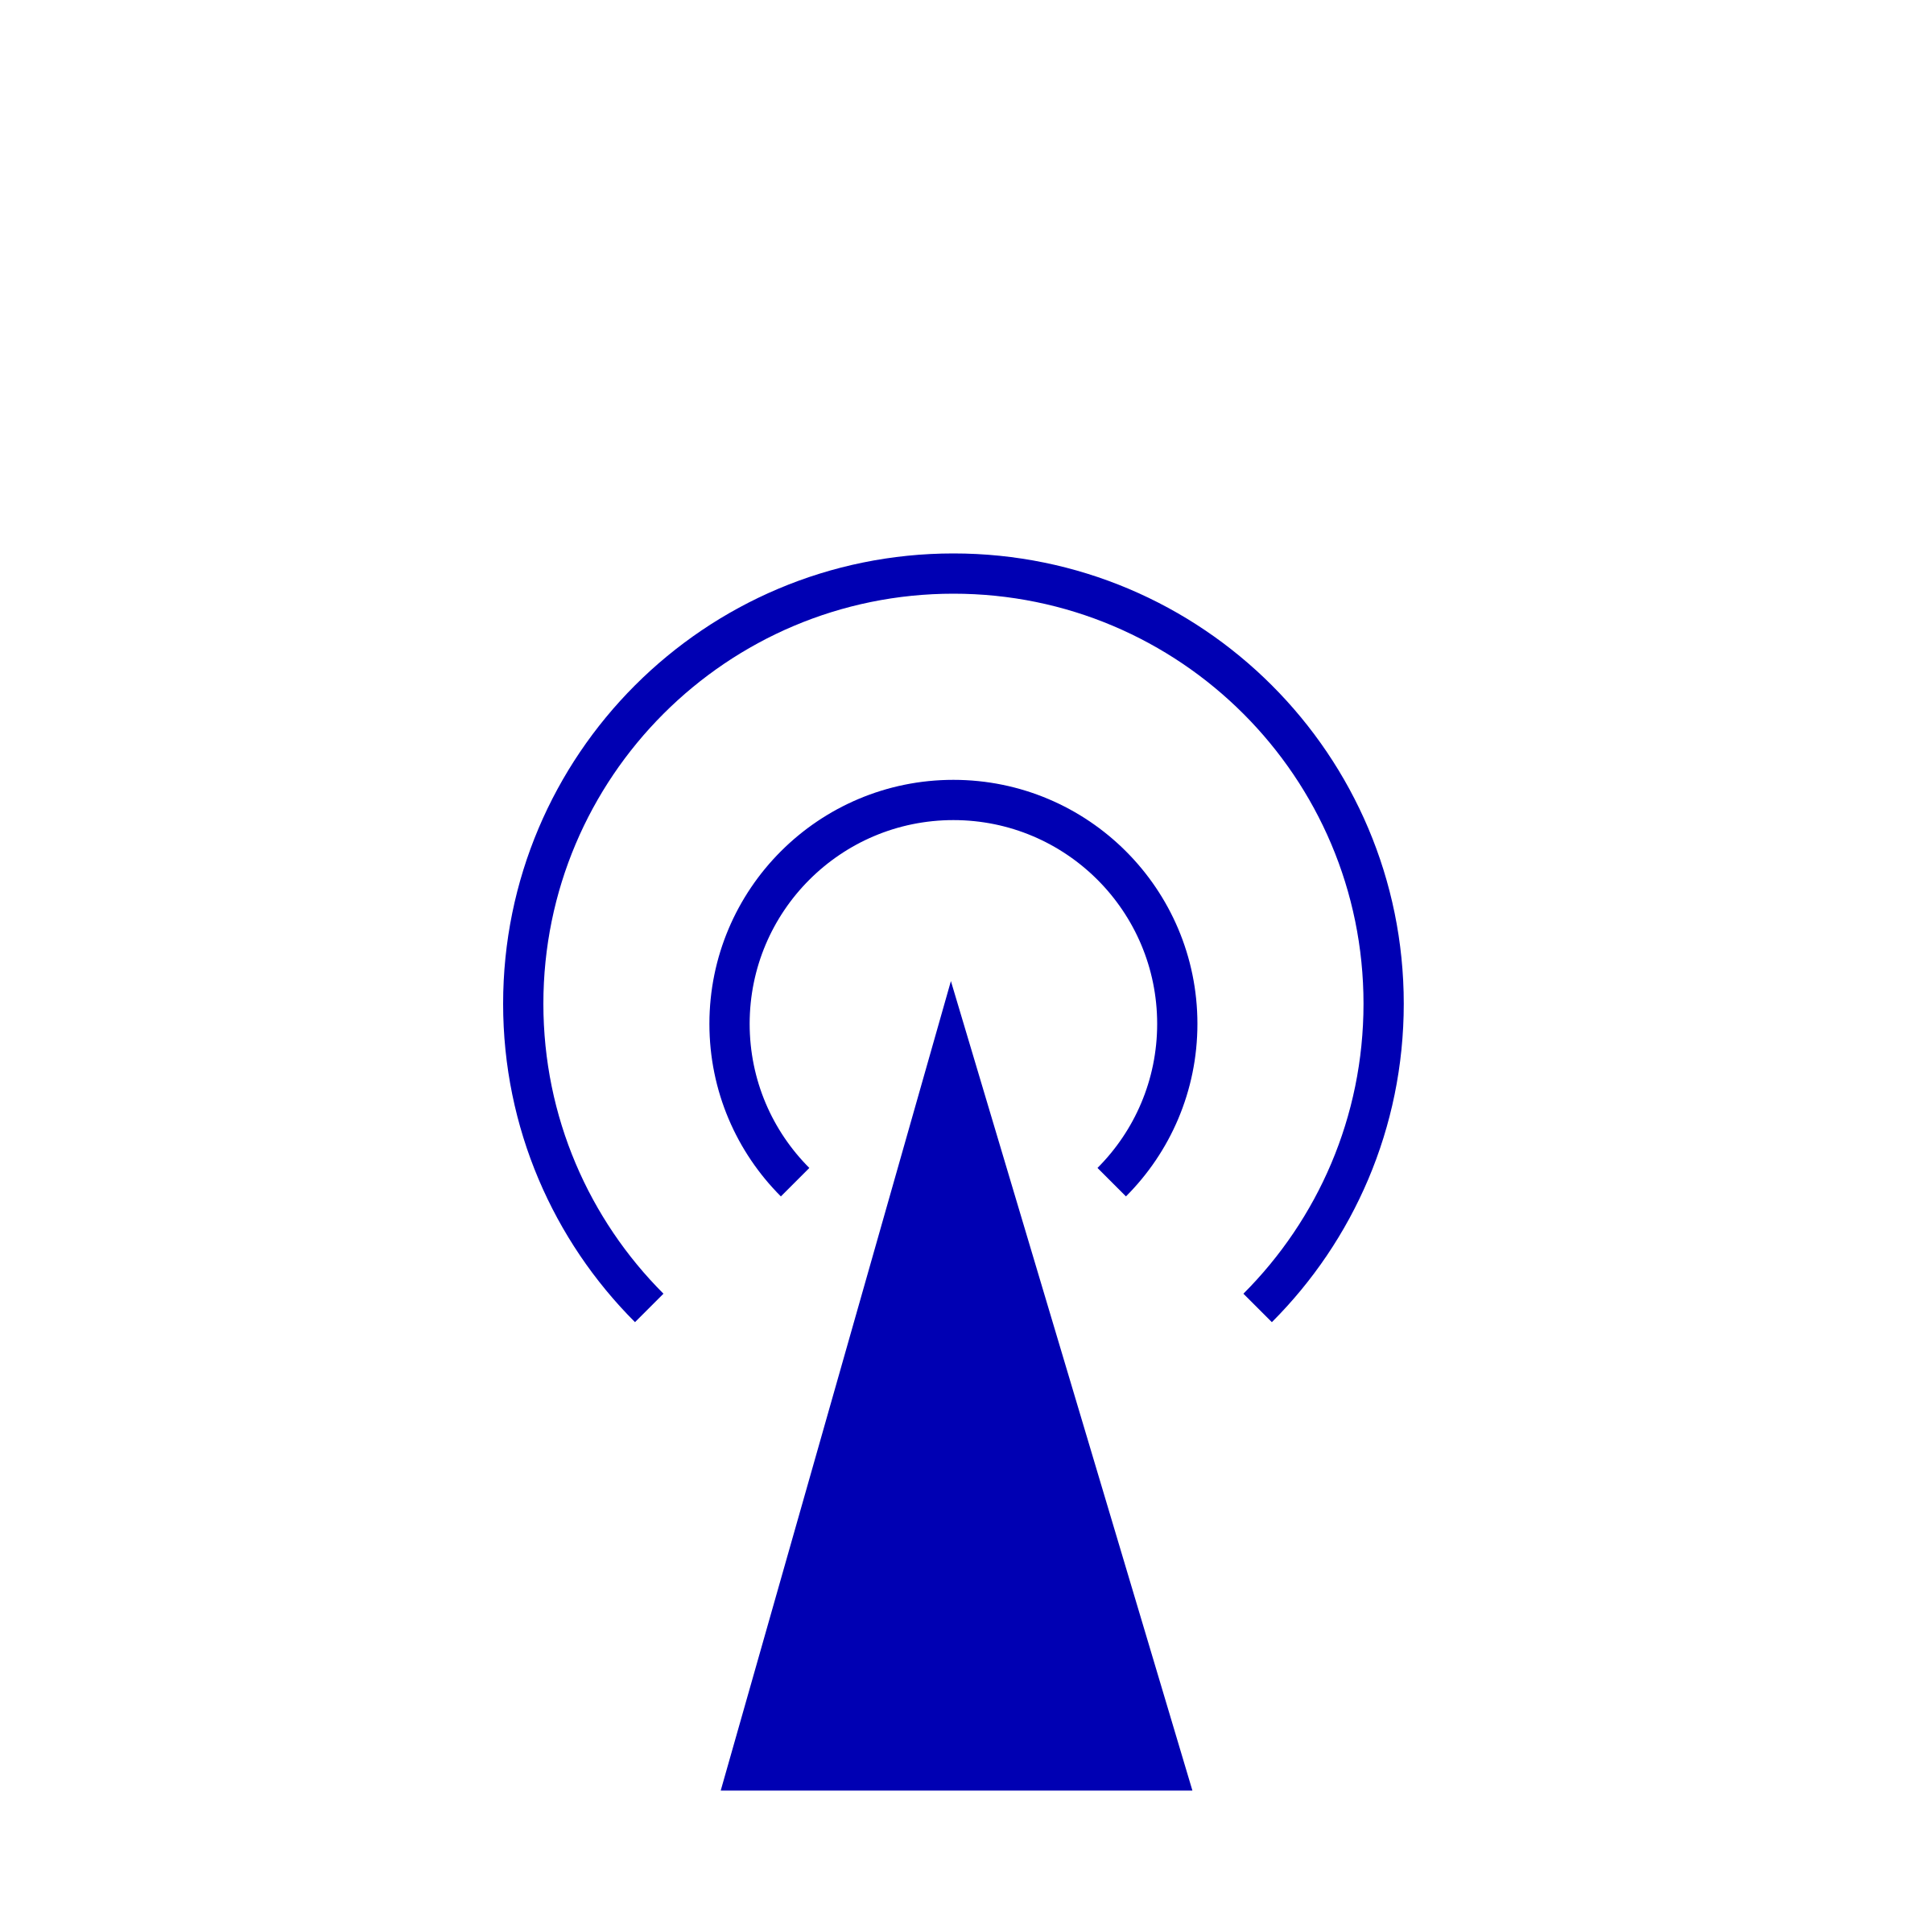 Aerial clipart wireless #8